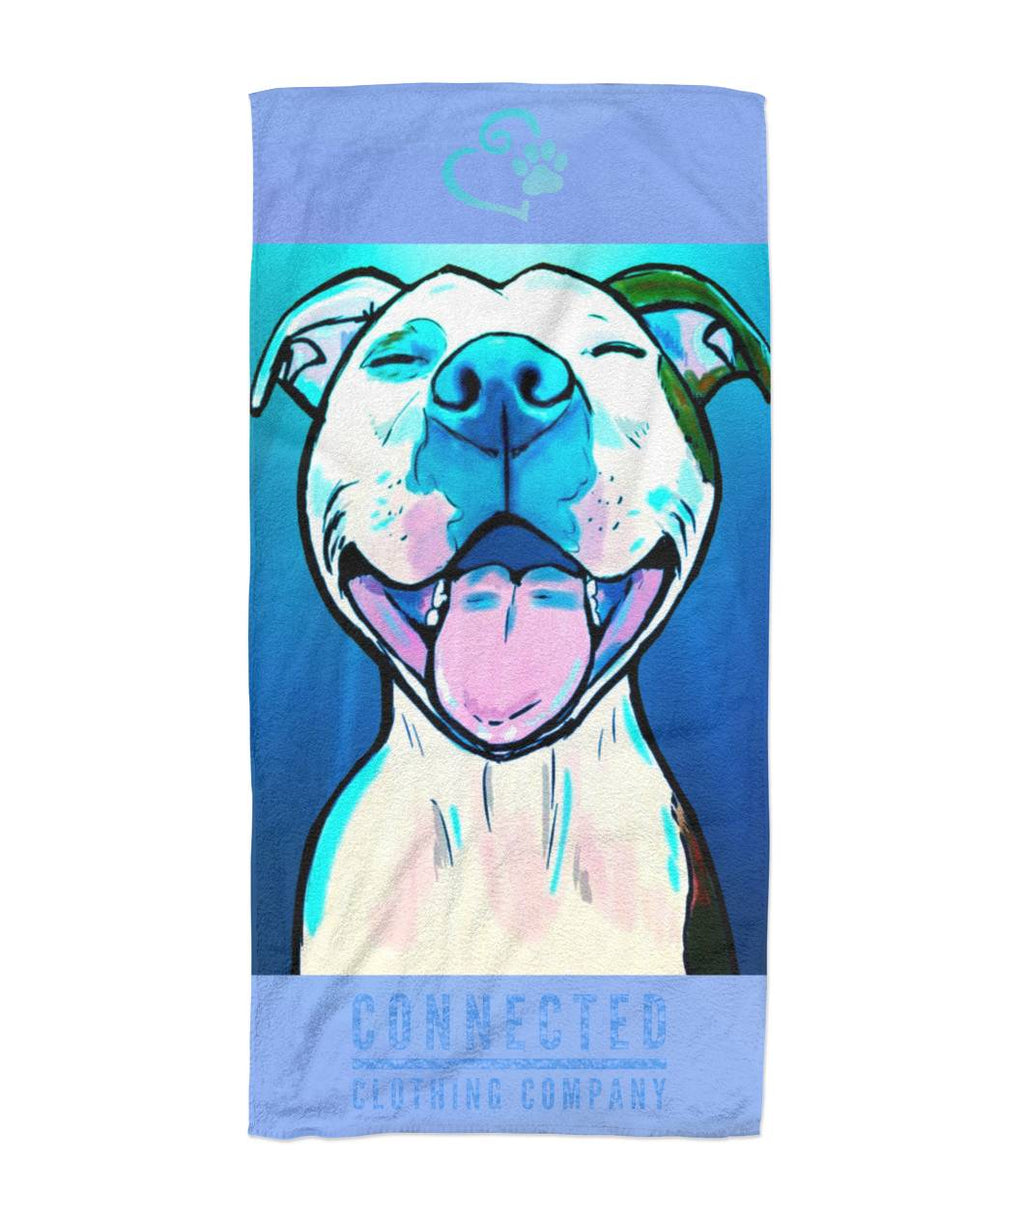 All Smiles Pit Beach Towel - Connected Clothing Company - 10% of profits donated